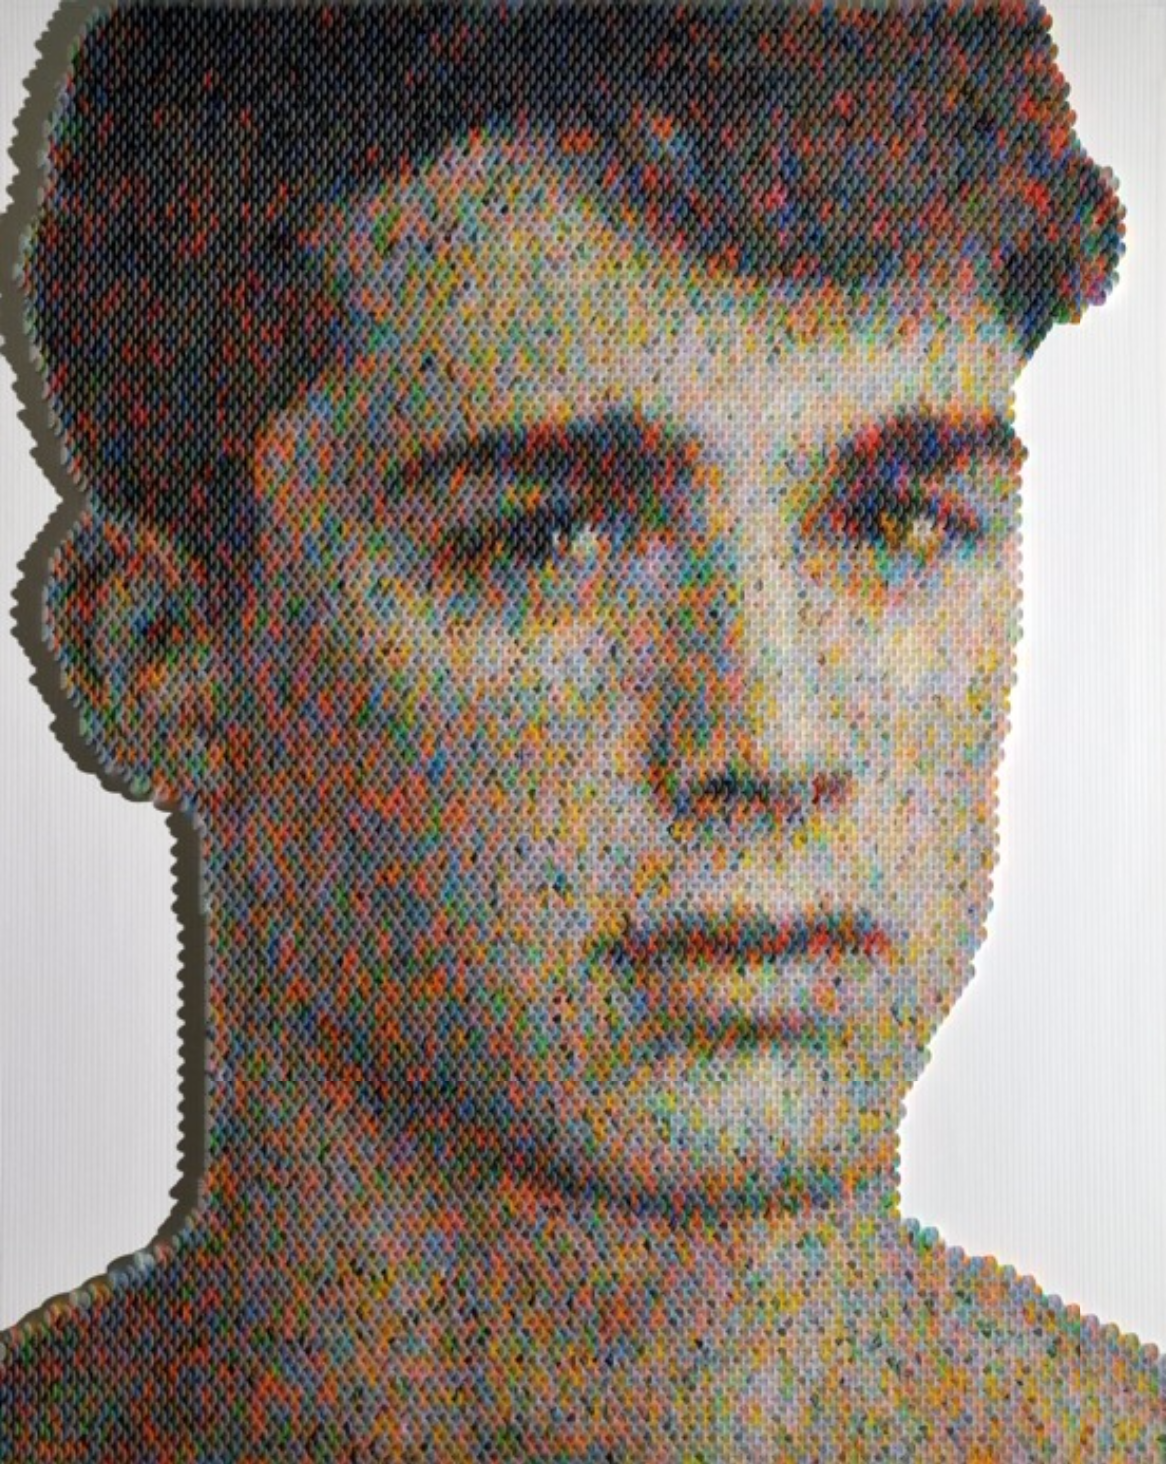 New Portraits Made From Hundreds of Punched Paint Chips - Pietro Boselli